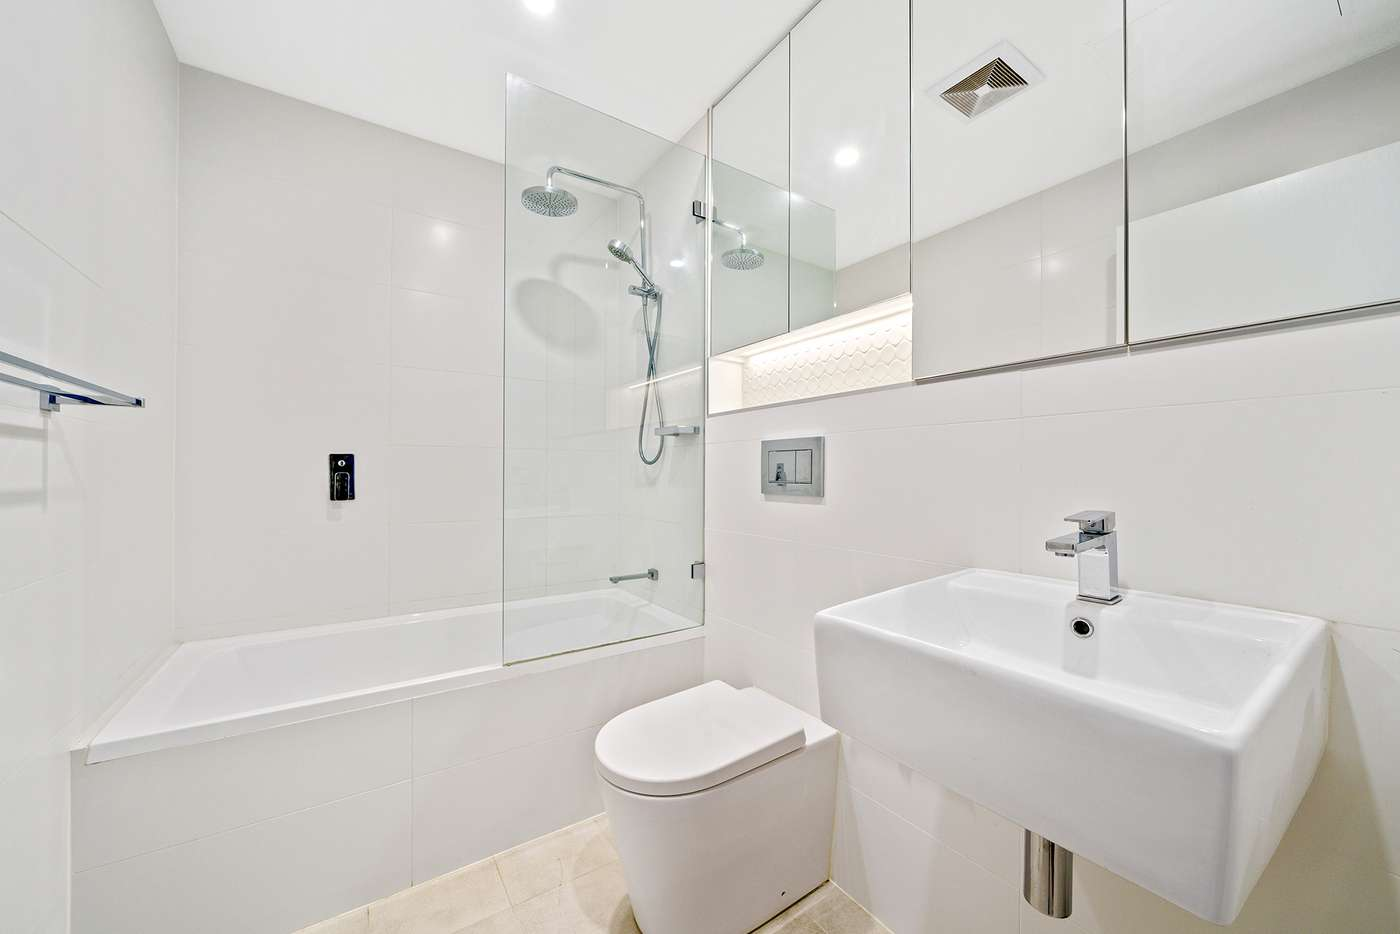 Sixth view of Homely apartment listing, 24/14 Bouvardia Street, Asquith NSW 2077